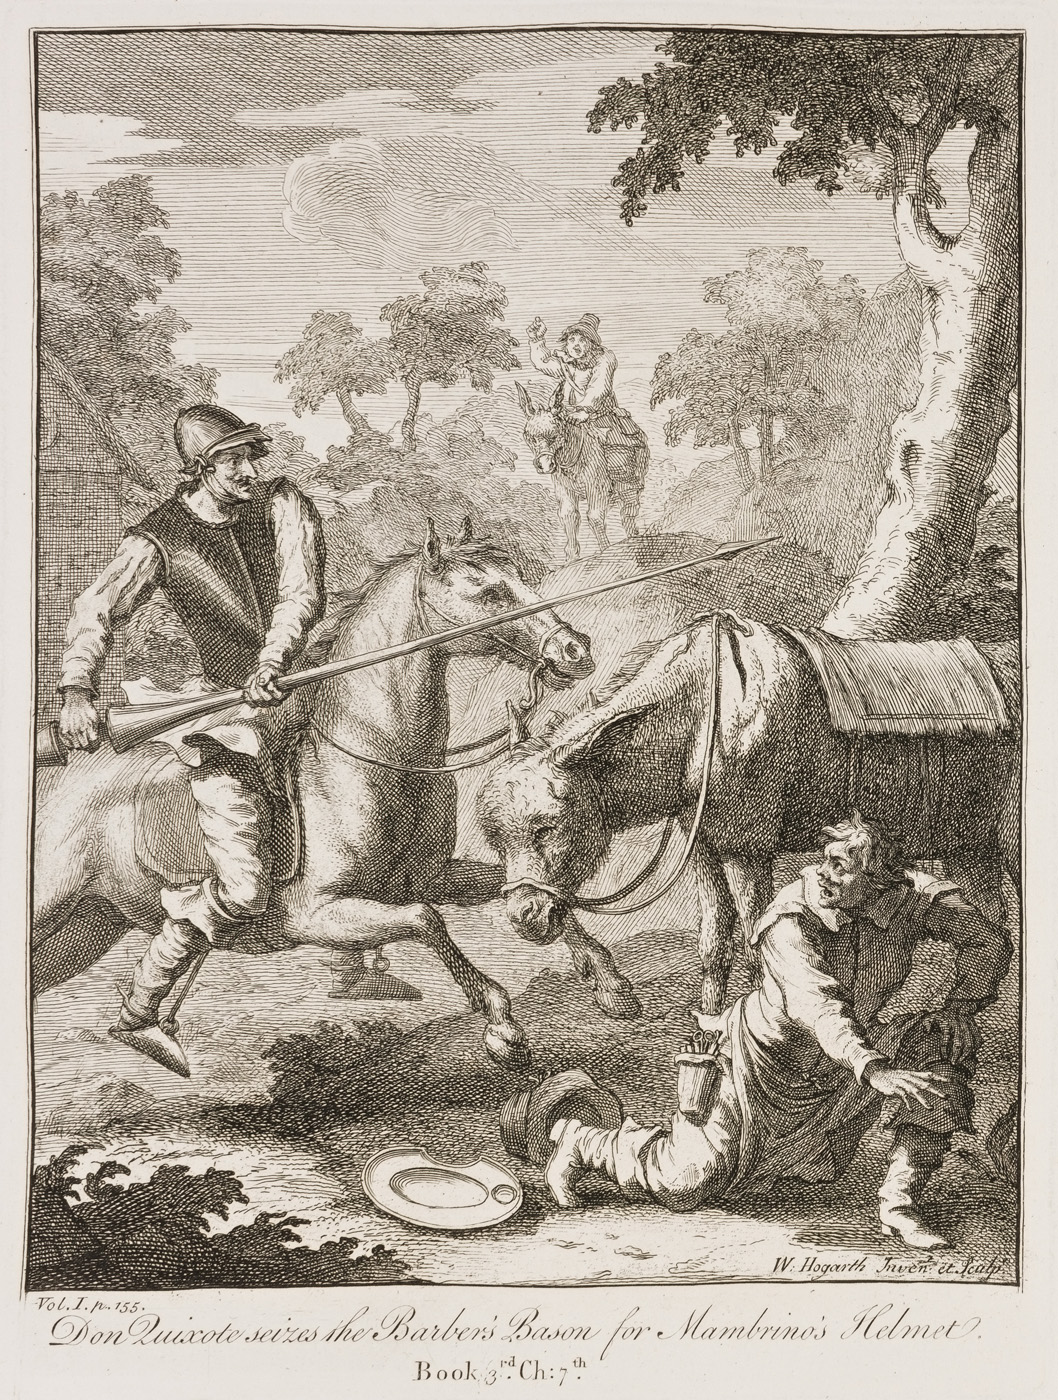 William Hogarth - Don Quixote V